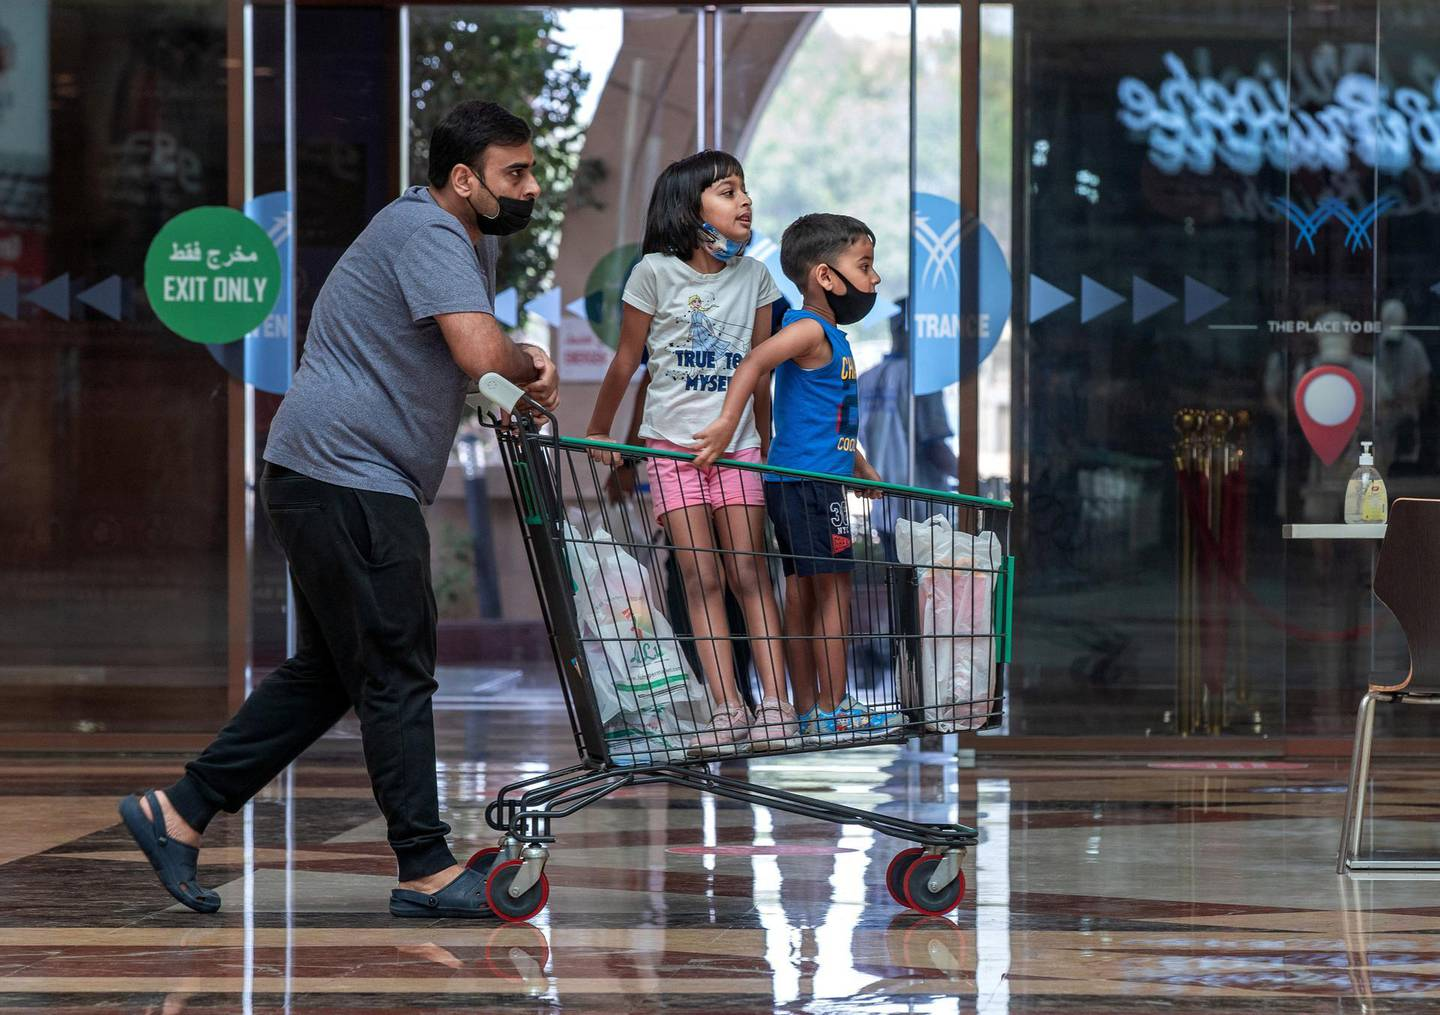 Abu Dhabi residents at the Khalidiyah Mall on June 19th, 2021. Abu Dhabi has temporarily suspended its green pass scheme while a technical fault with Al Hosn app is resolved. Victor Besa / The National.